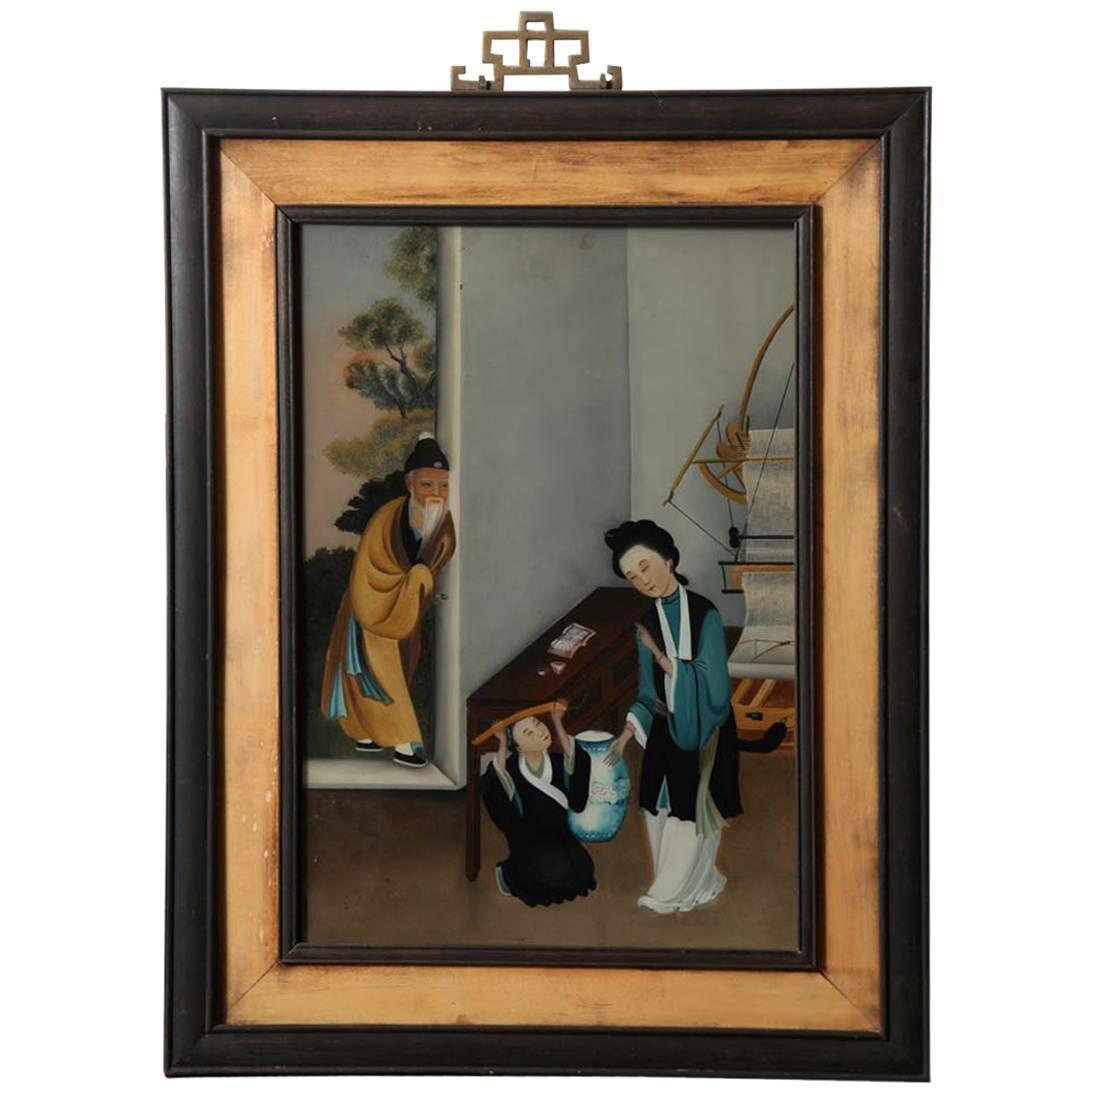 959de879be9e5 Late 19th Century Chinese Export Reverse Glass Painting at 1stdibs